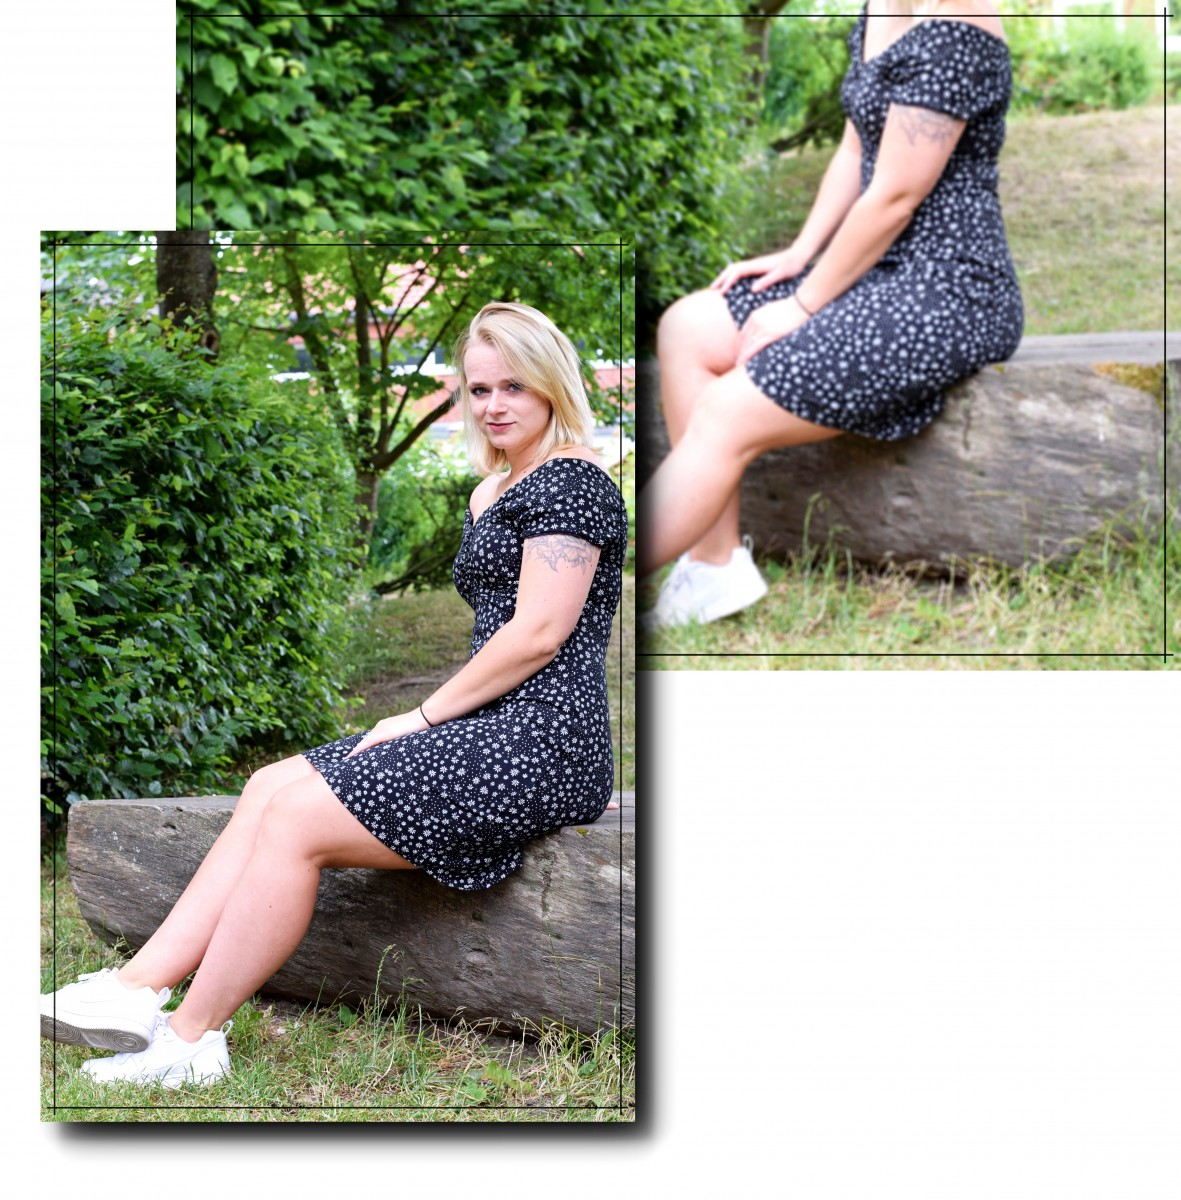 Kontrolle-Swanted-Blog-Fashion-Dress-Summer-Jeans Fritz-Nike-Schuhe-Outfit